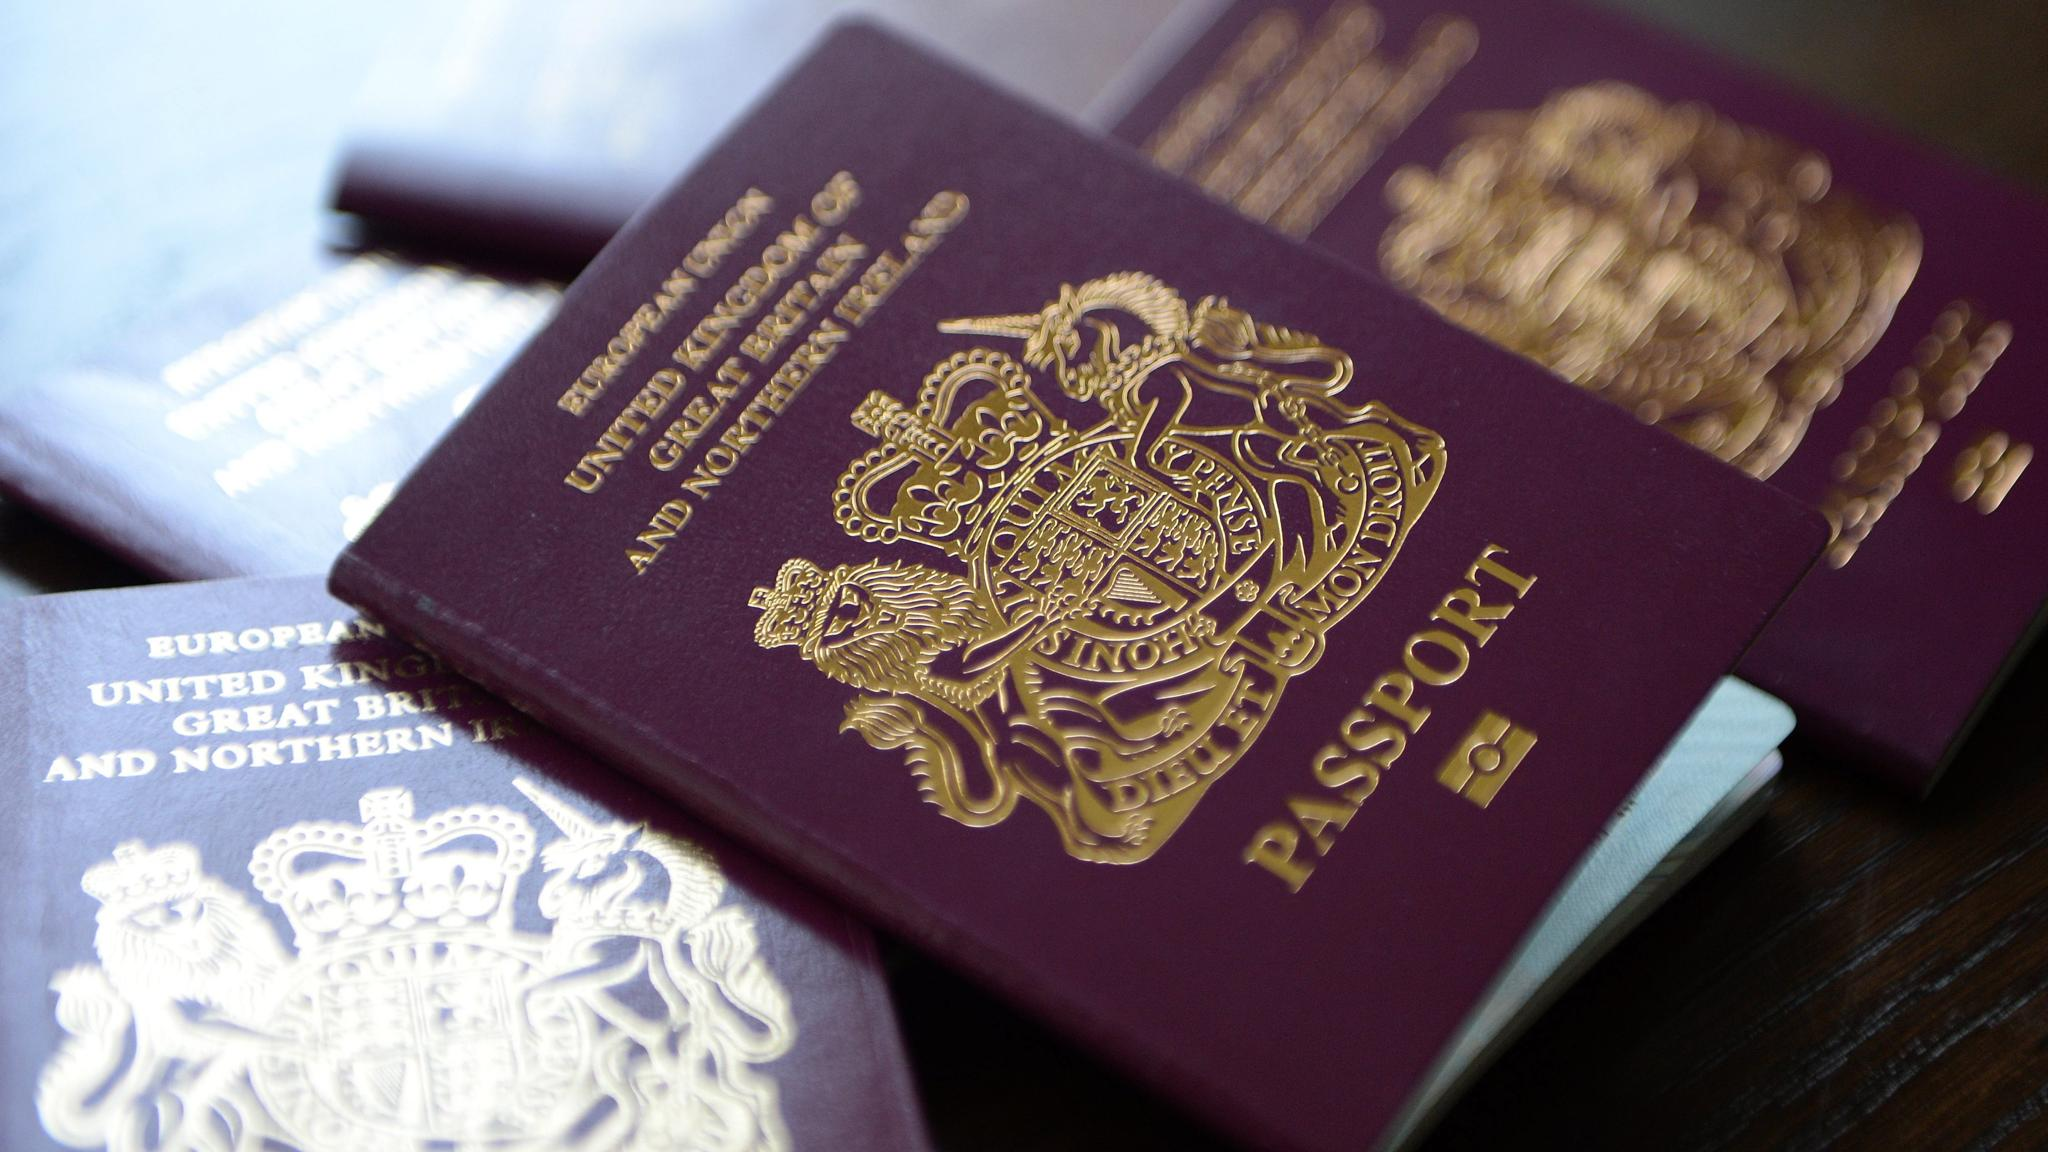 Government announces measures to help clear the backlog in passport applications...epa04253140 British passports in London, Britain, 13 June 2014. The Home Office has said on 12 July that to help clear the huge backlog of passport applications it will scrap charges for urgent renewals. Some 30,000 people have been impacted by the delays.  EPA/ANDY RAIN